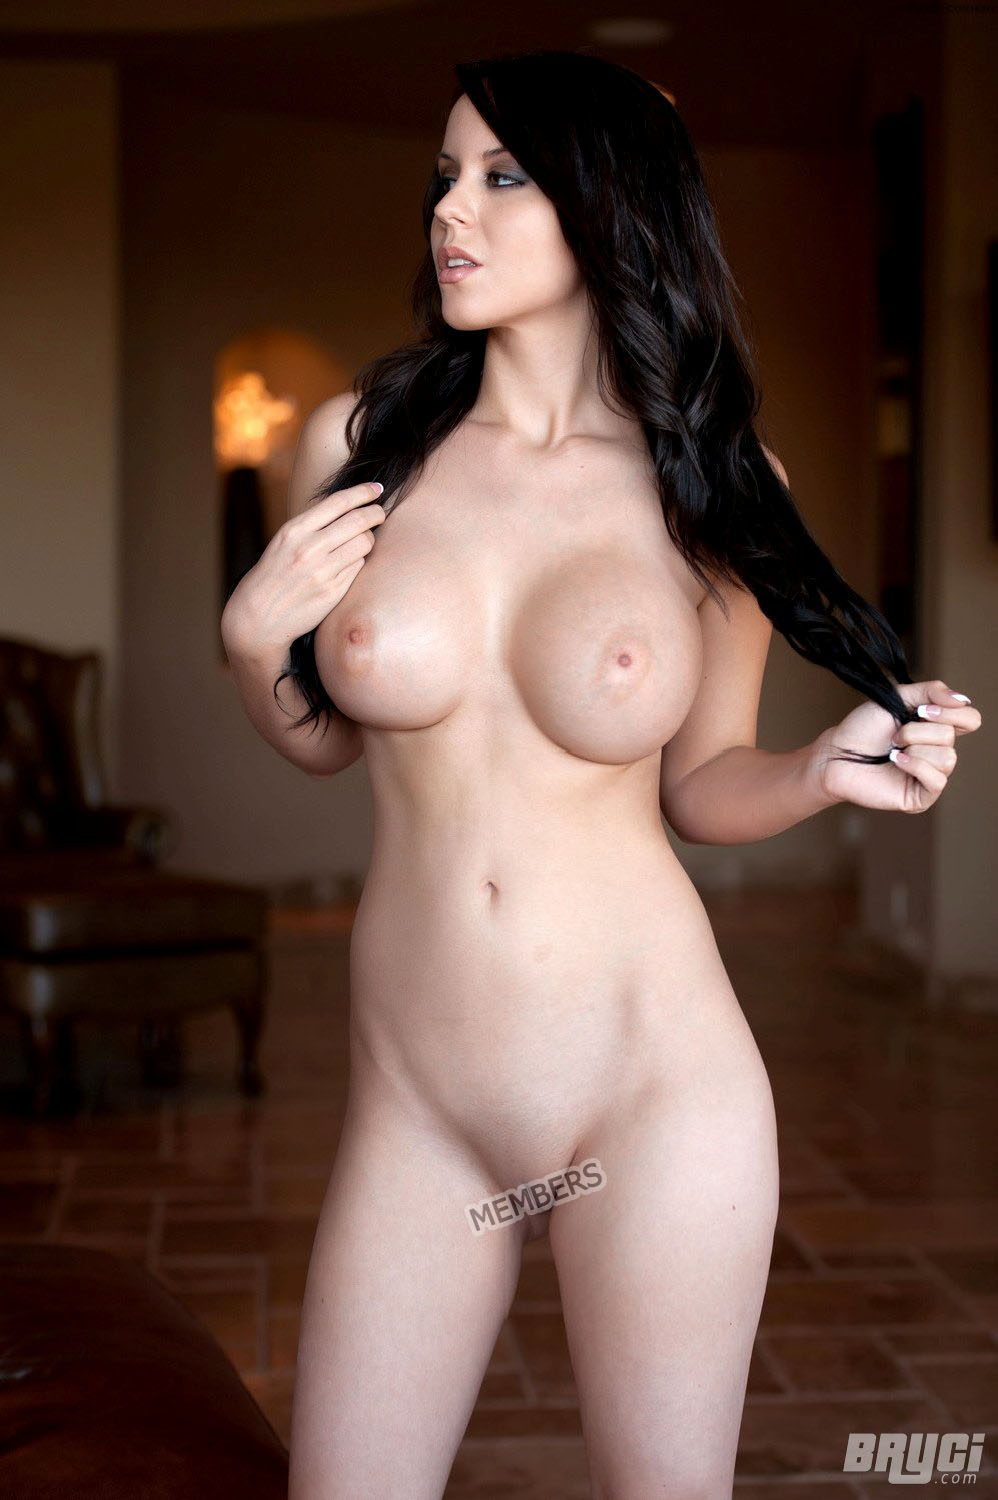 Hottest porn star of all time